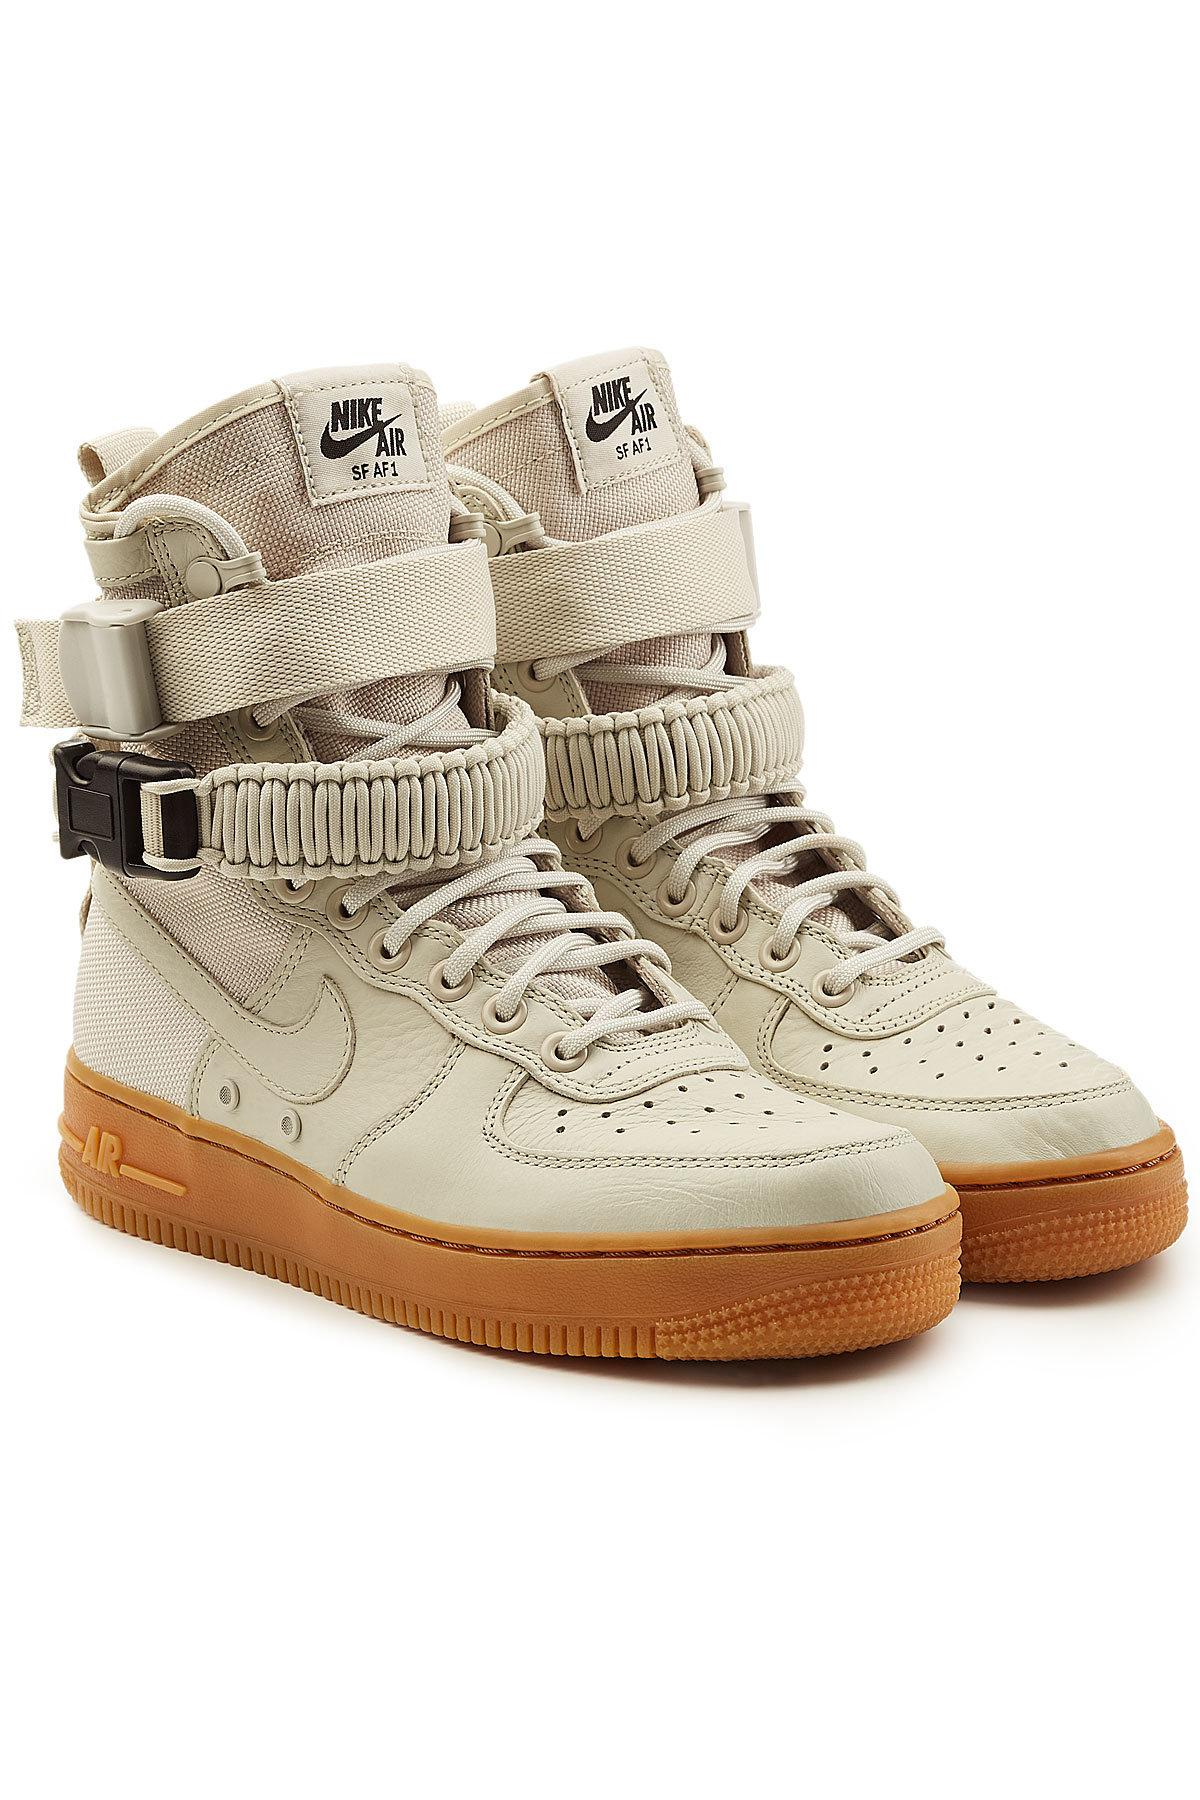 nike sf air force 1 high top sneakers with leather lyst. Black Bedroom Furniture Sets. Home Design Ideas